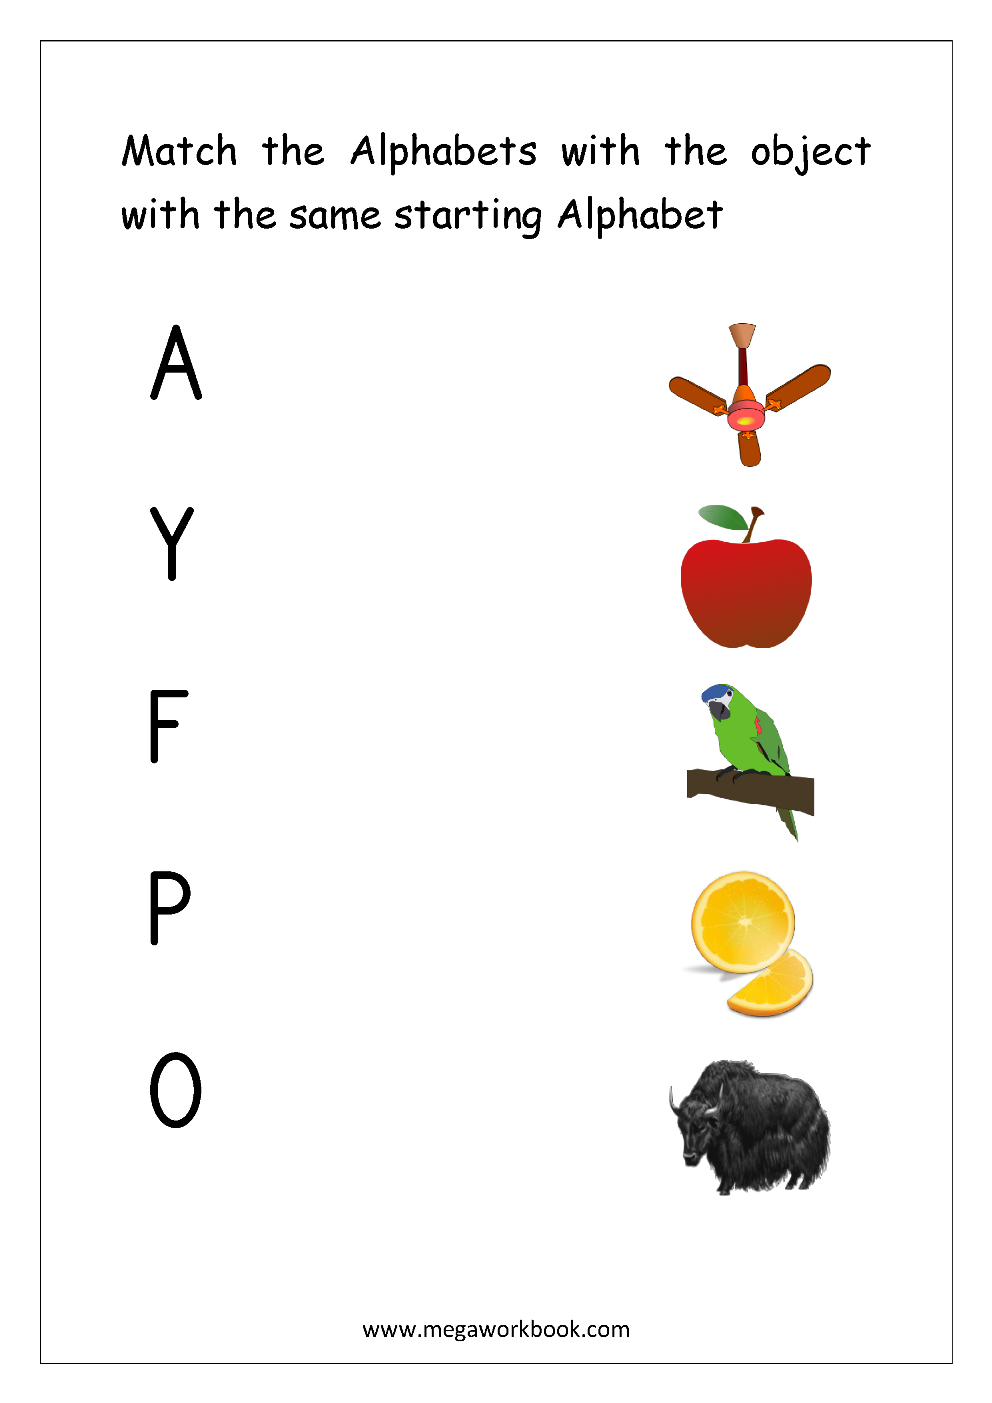 Letter Matching Worksheet - Match Object With The Starting within Alphabet Matching Worksheets For Preschoolers